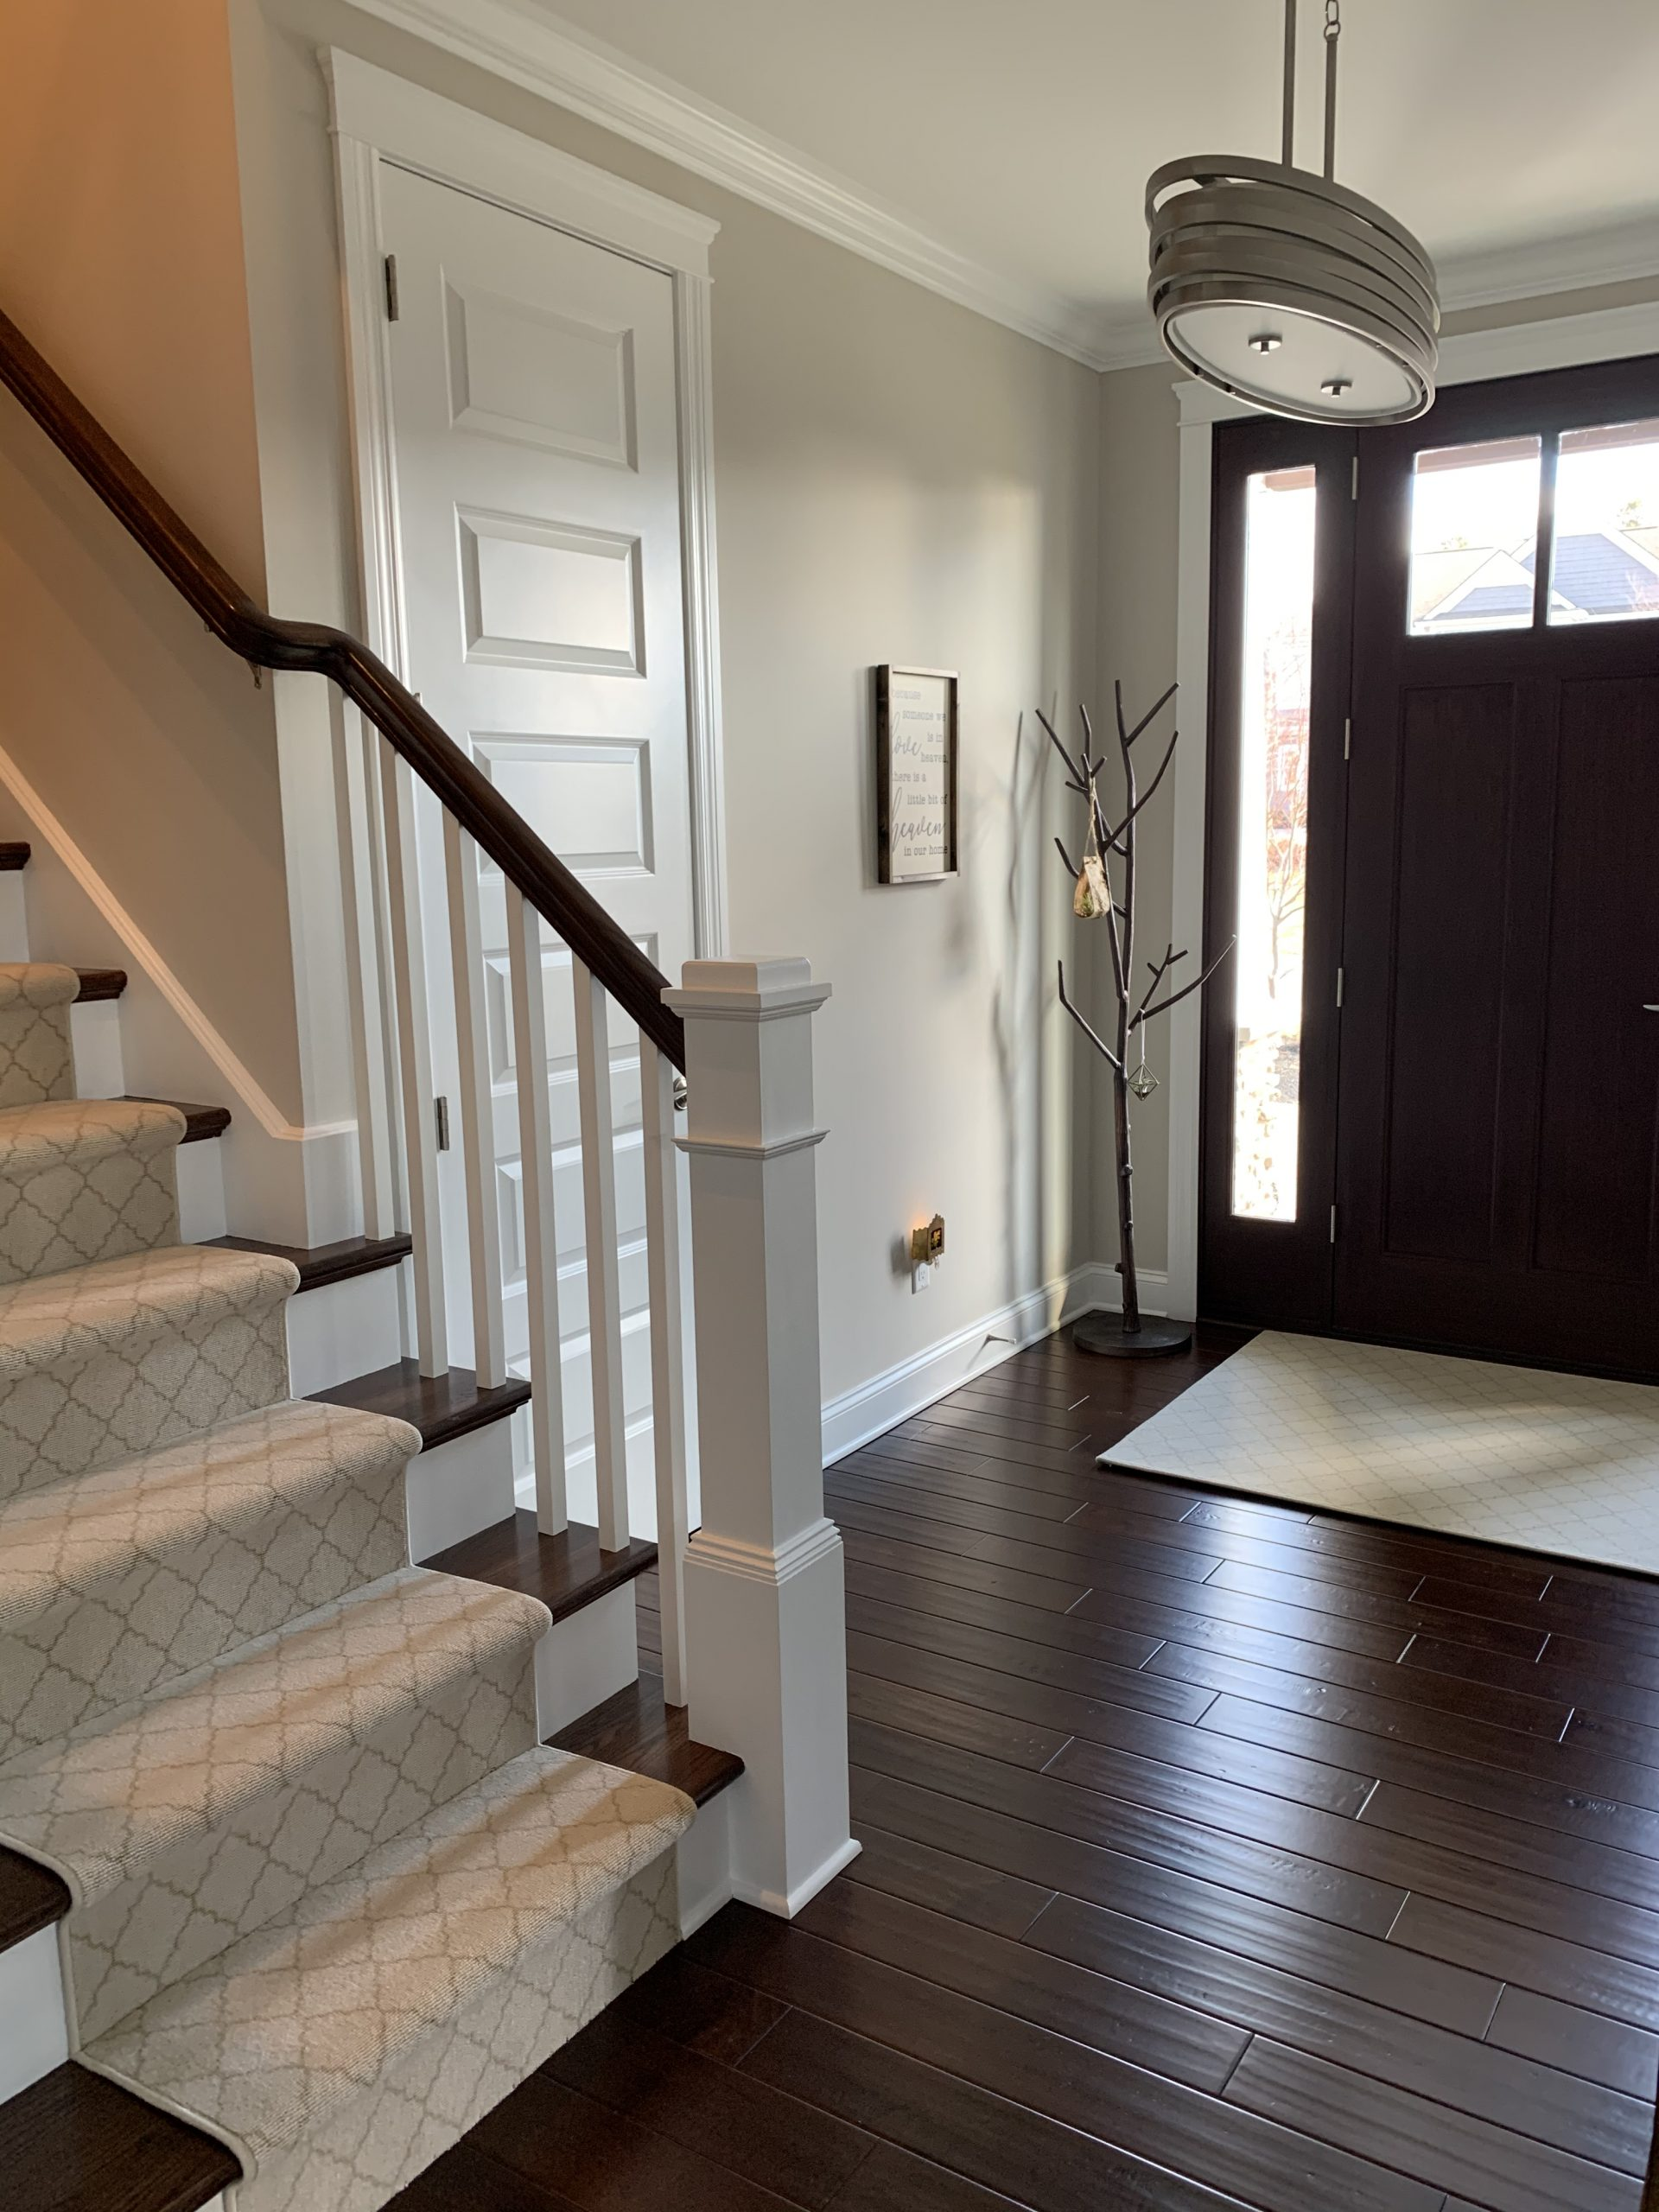 entryway-hardwood-floors-carpet-runner-m